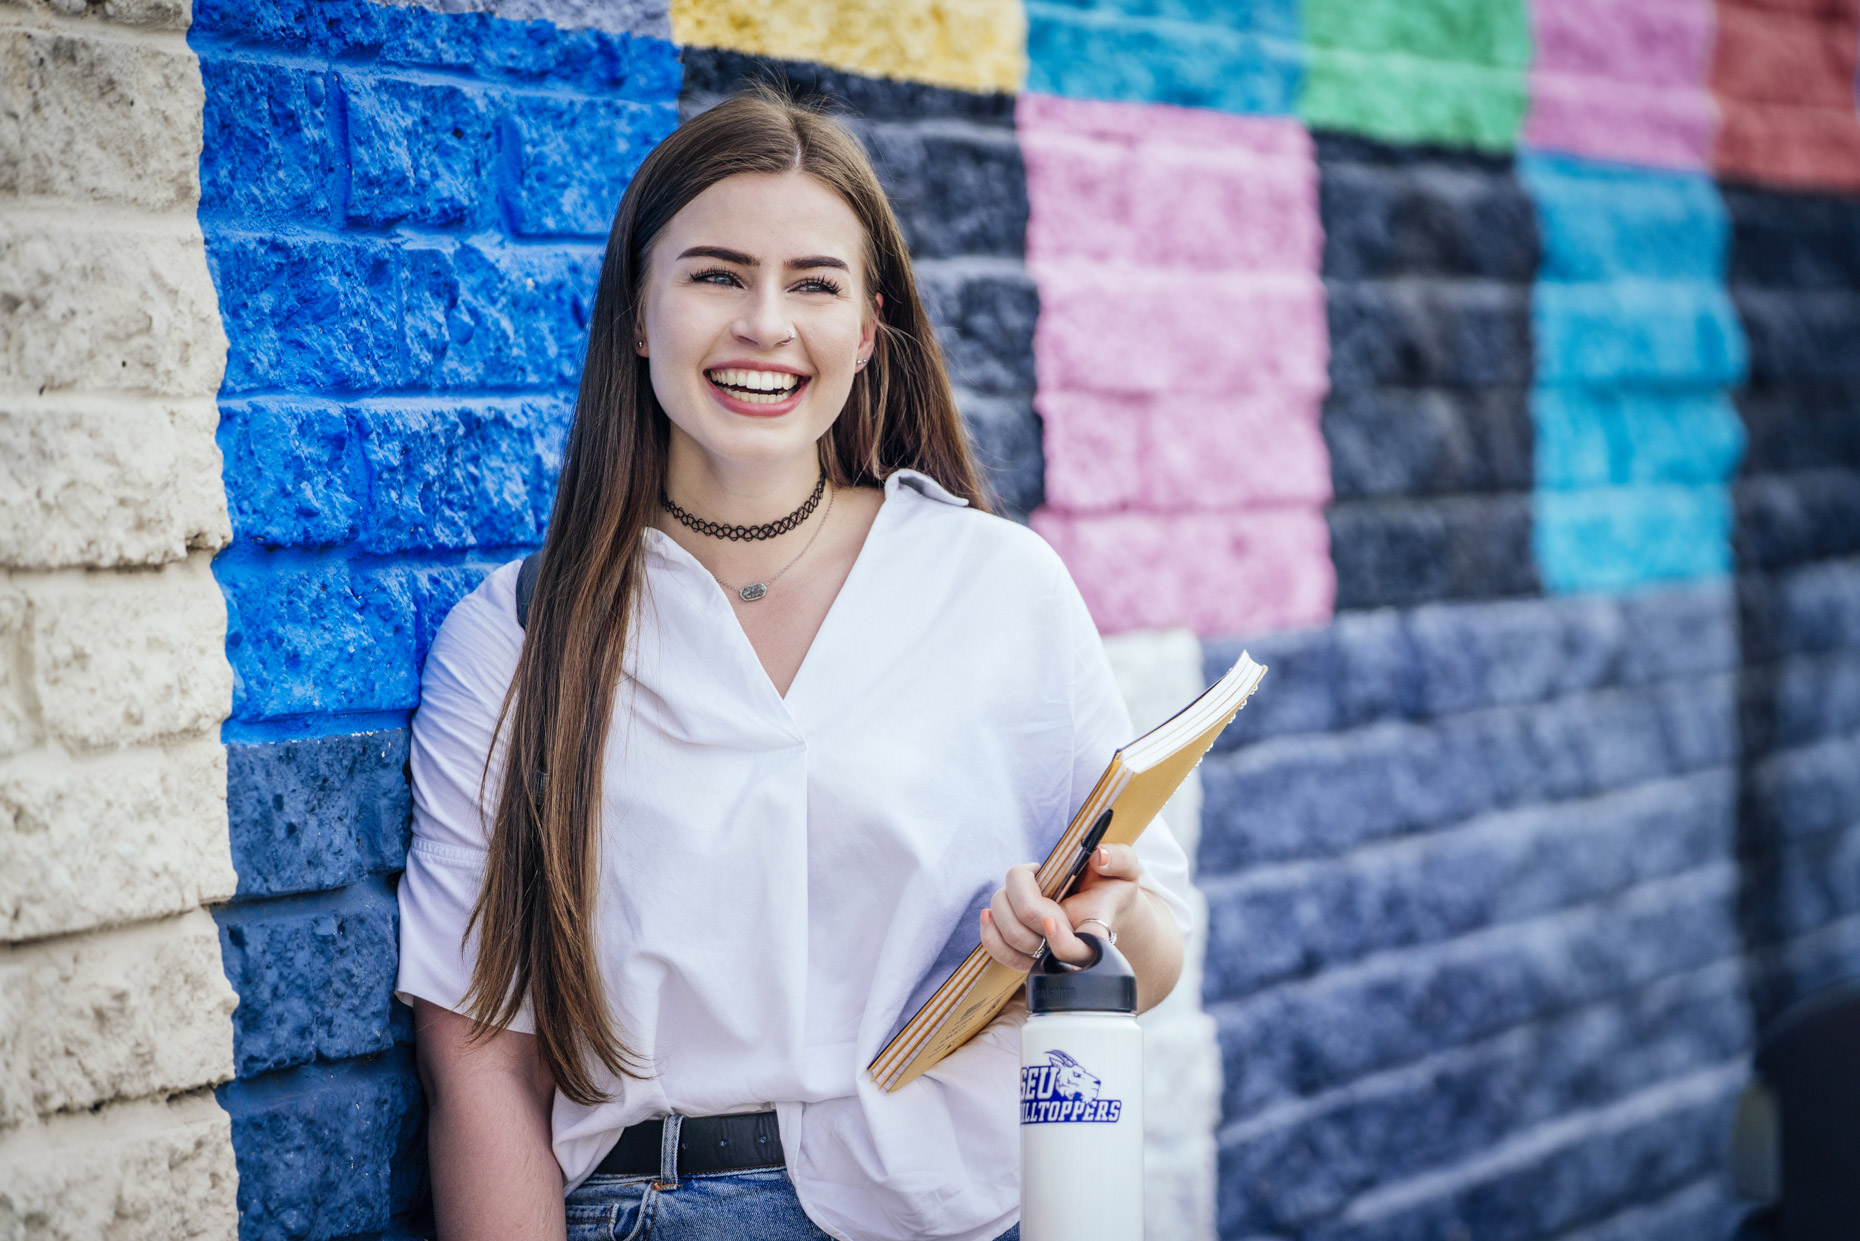 Female college student standing in front of wall holding books and laughing